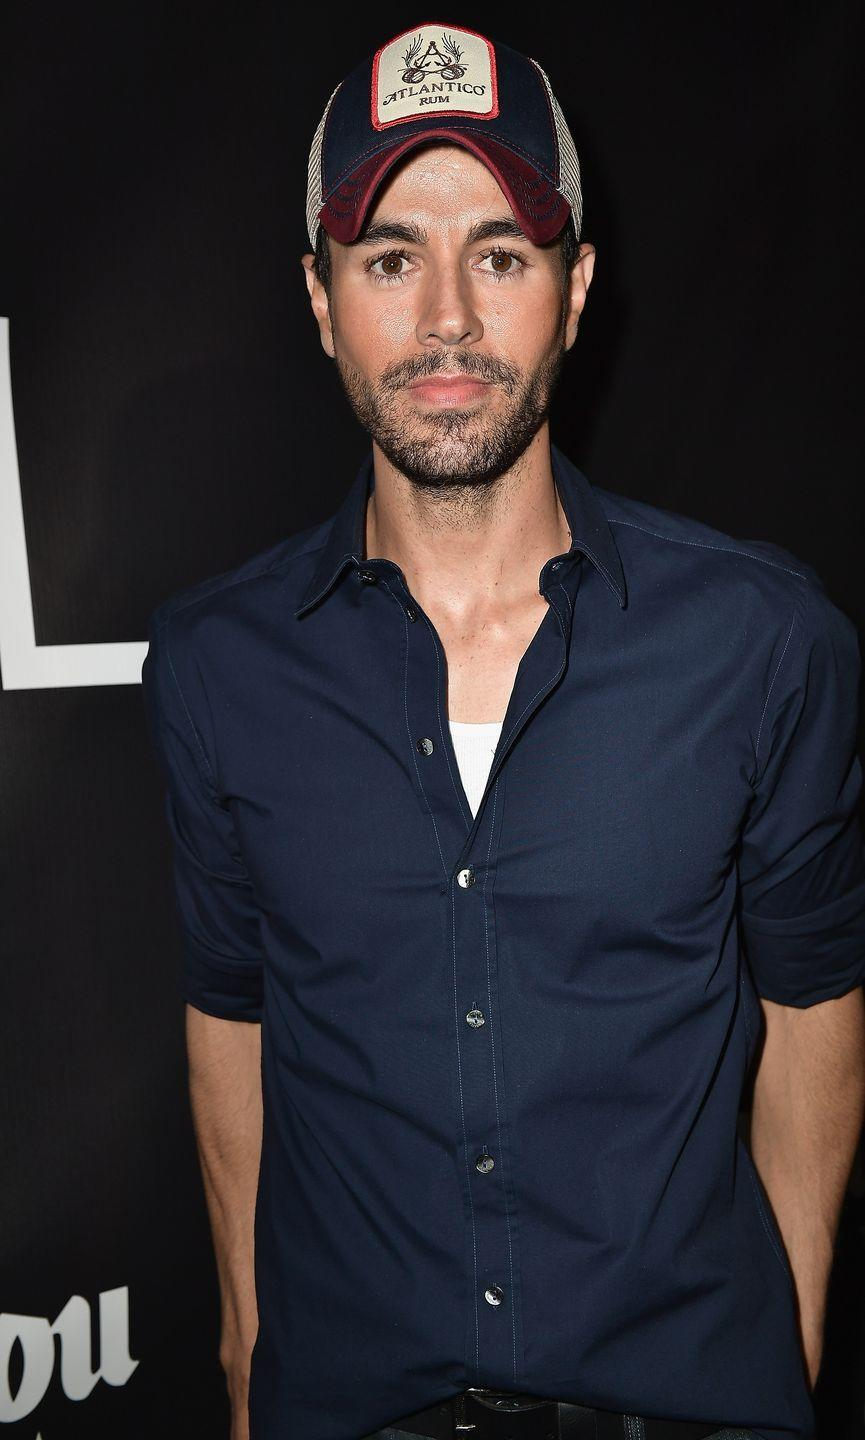 <p>No matter where he is, you can bet that Enrique Iglesias will be wearing a baseball hat. No word on whether the singer is hiding a receding hairline yet, but the trend suits him well. </p>